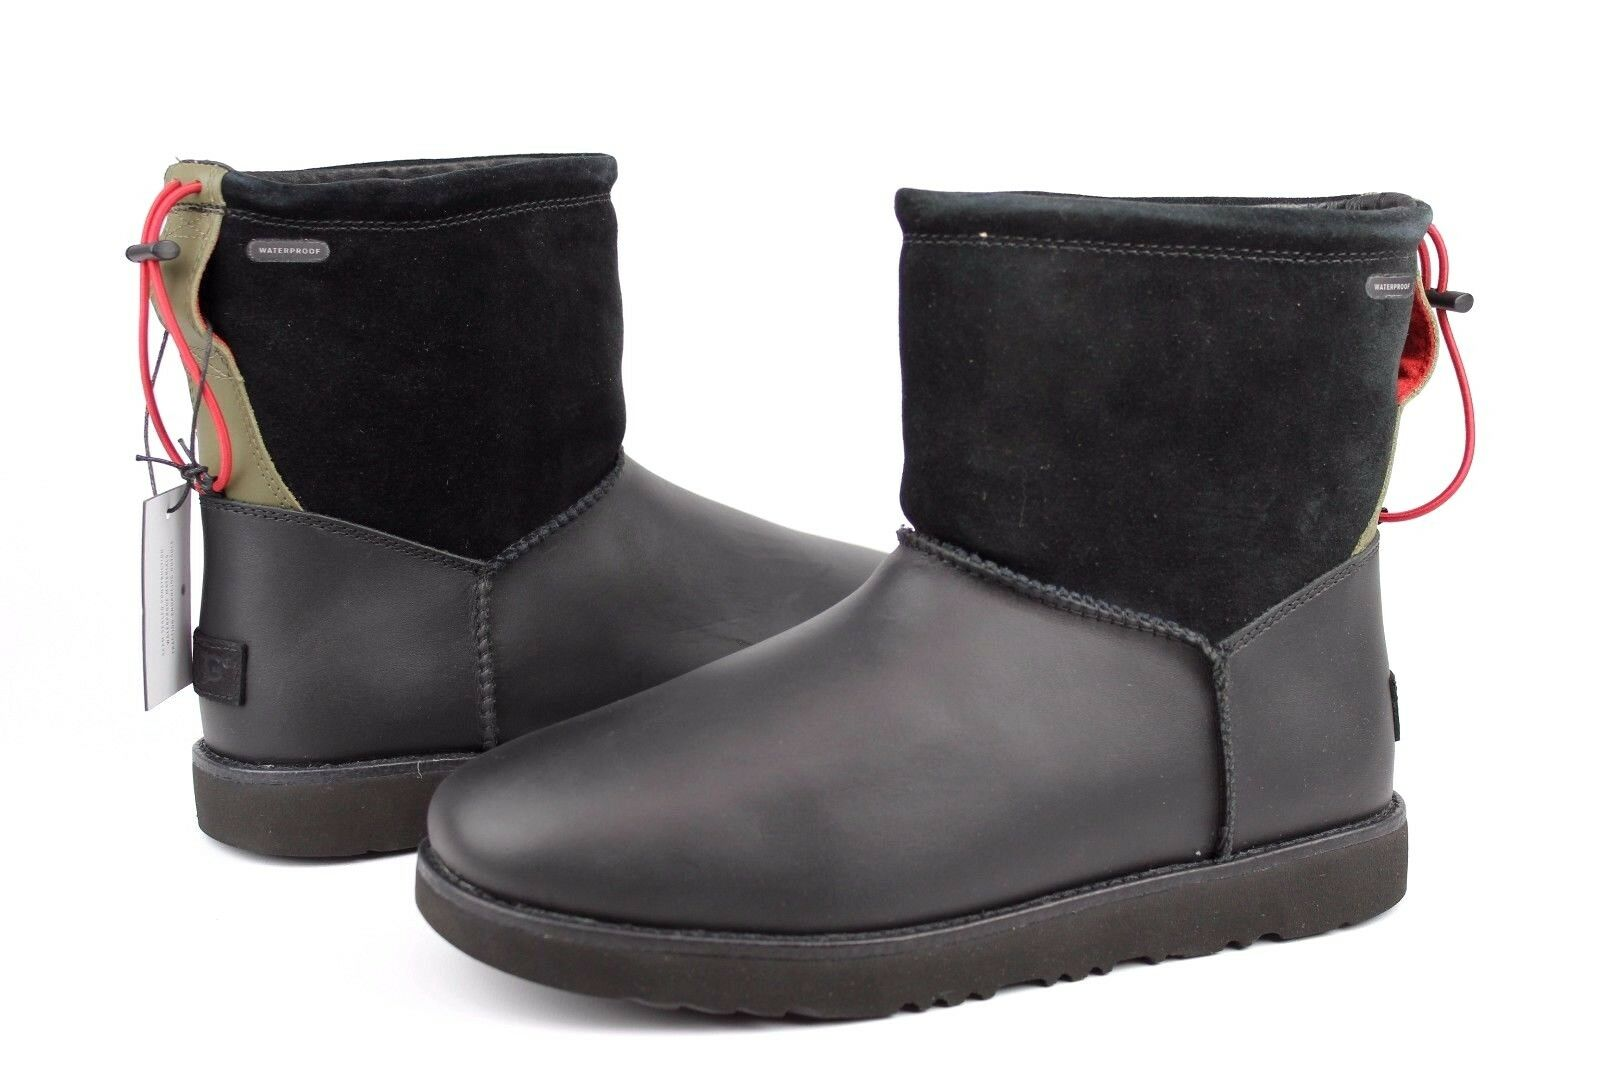 Ugg M Classic Toggle Waterproof Negro-1017229 CNPbZYX